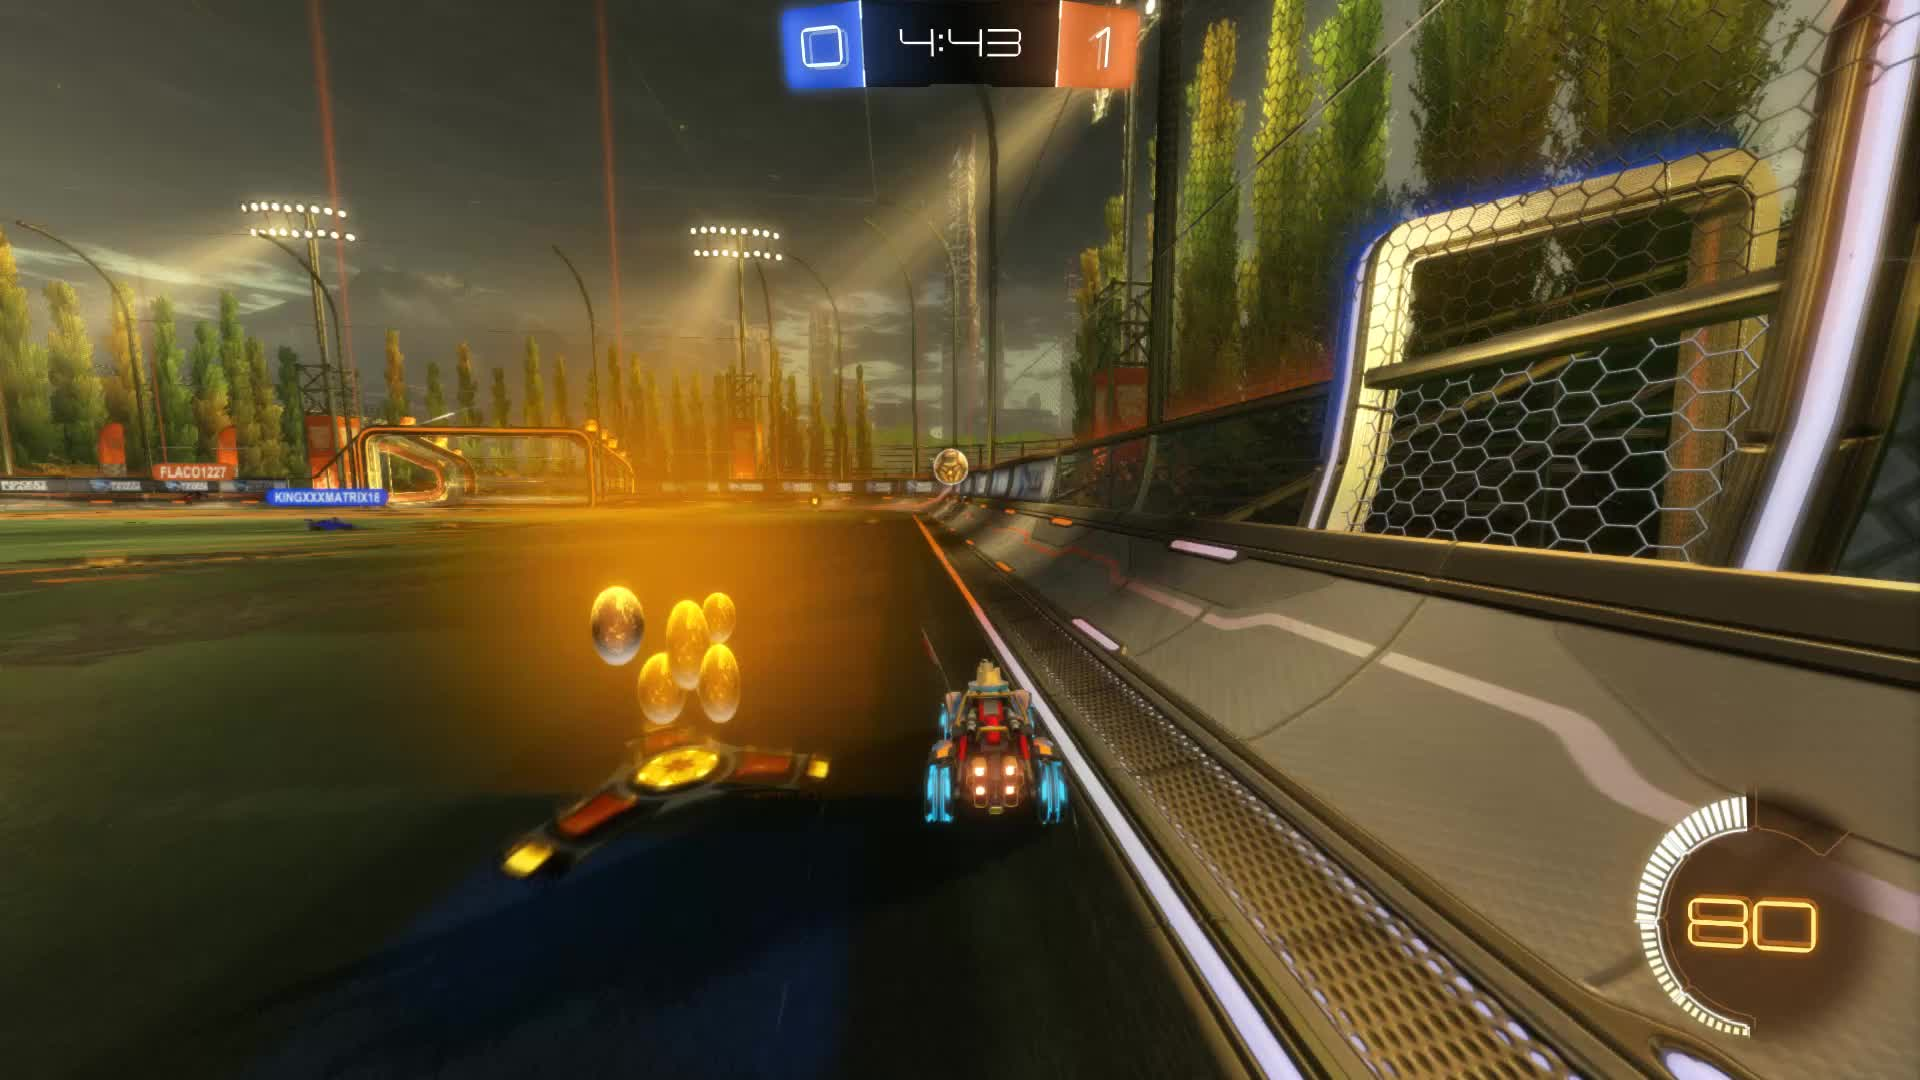 BewbaliciousRex, Gif Your Game, GifYourGame, Goal, Rocket League, RocketLeague, Unforgivable GIFs